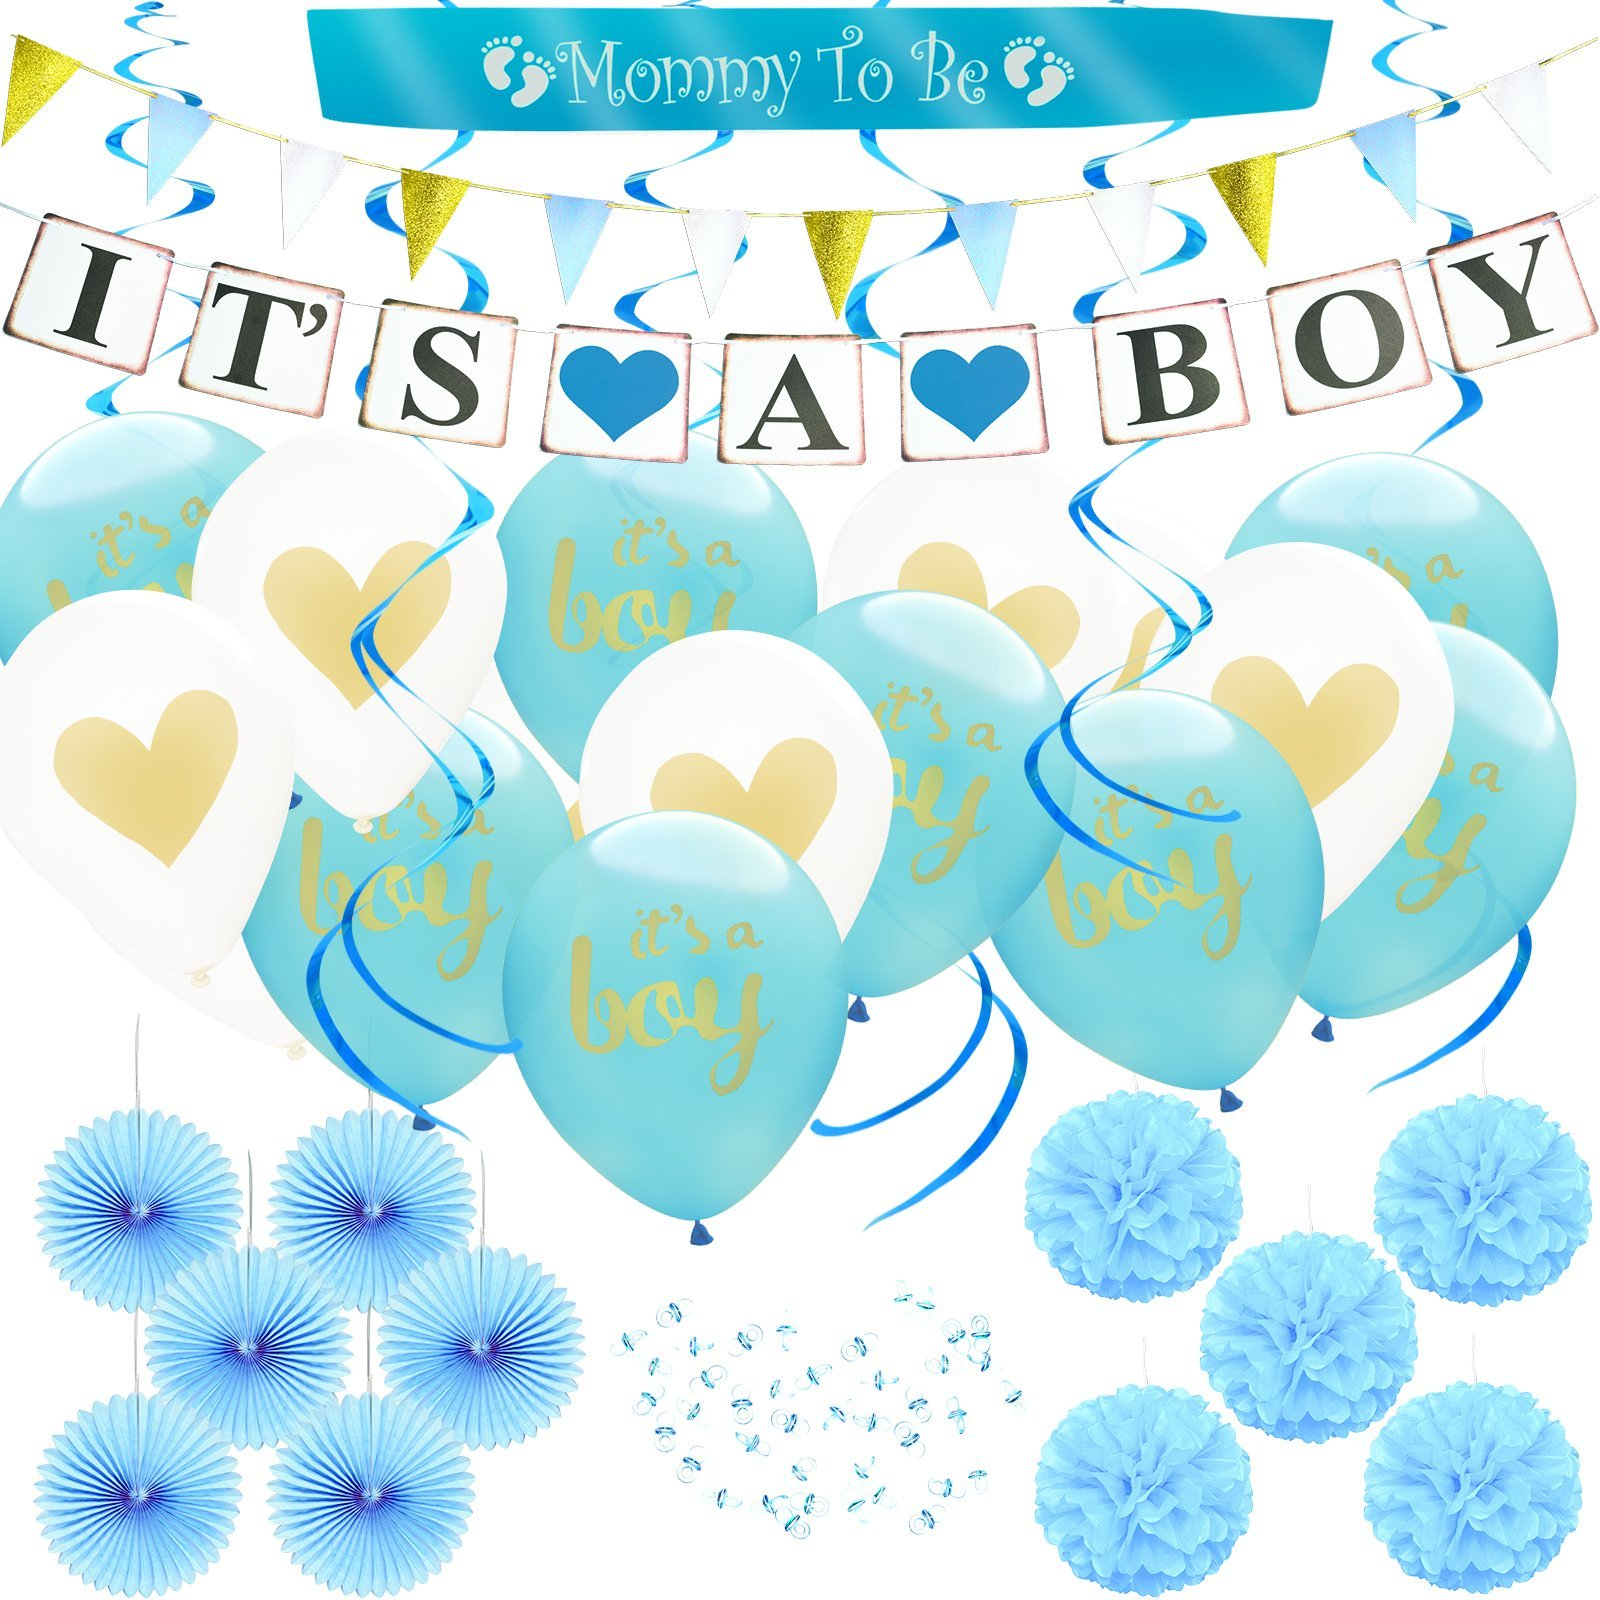 (80pcs) Baby Shower Party Decoration Set for Boy, IT'S A BOY Banner & Balloons, MOMMY TO BE Sash, Blue Paper Flower Decor Favors, Pacifiers, Swirl Garland, Glitter Triangle Banner, Party Supplies